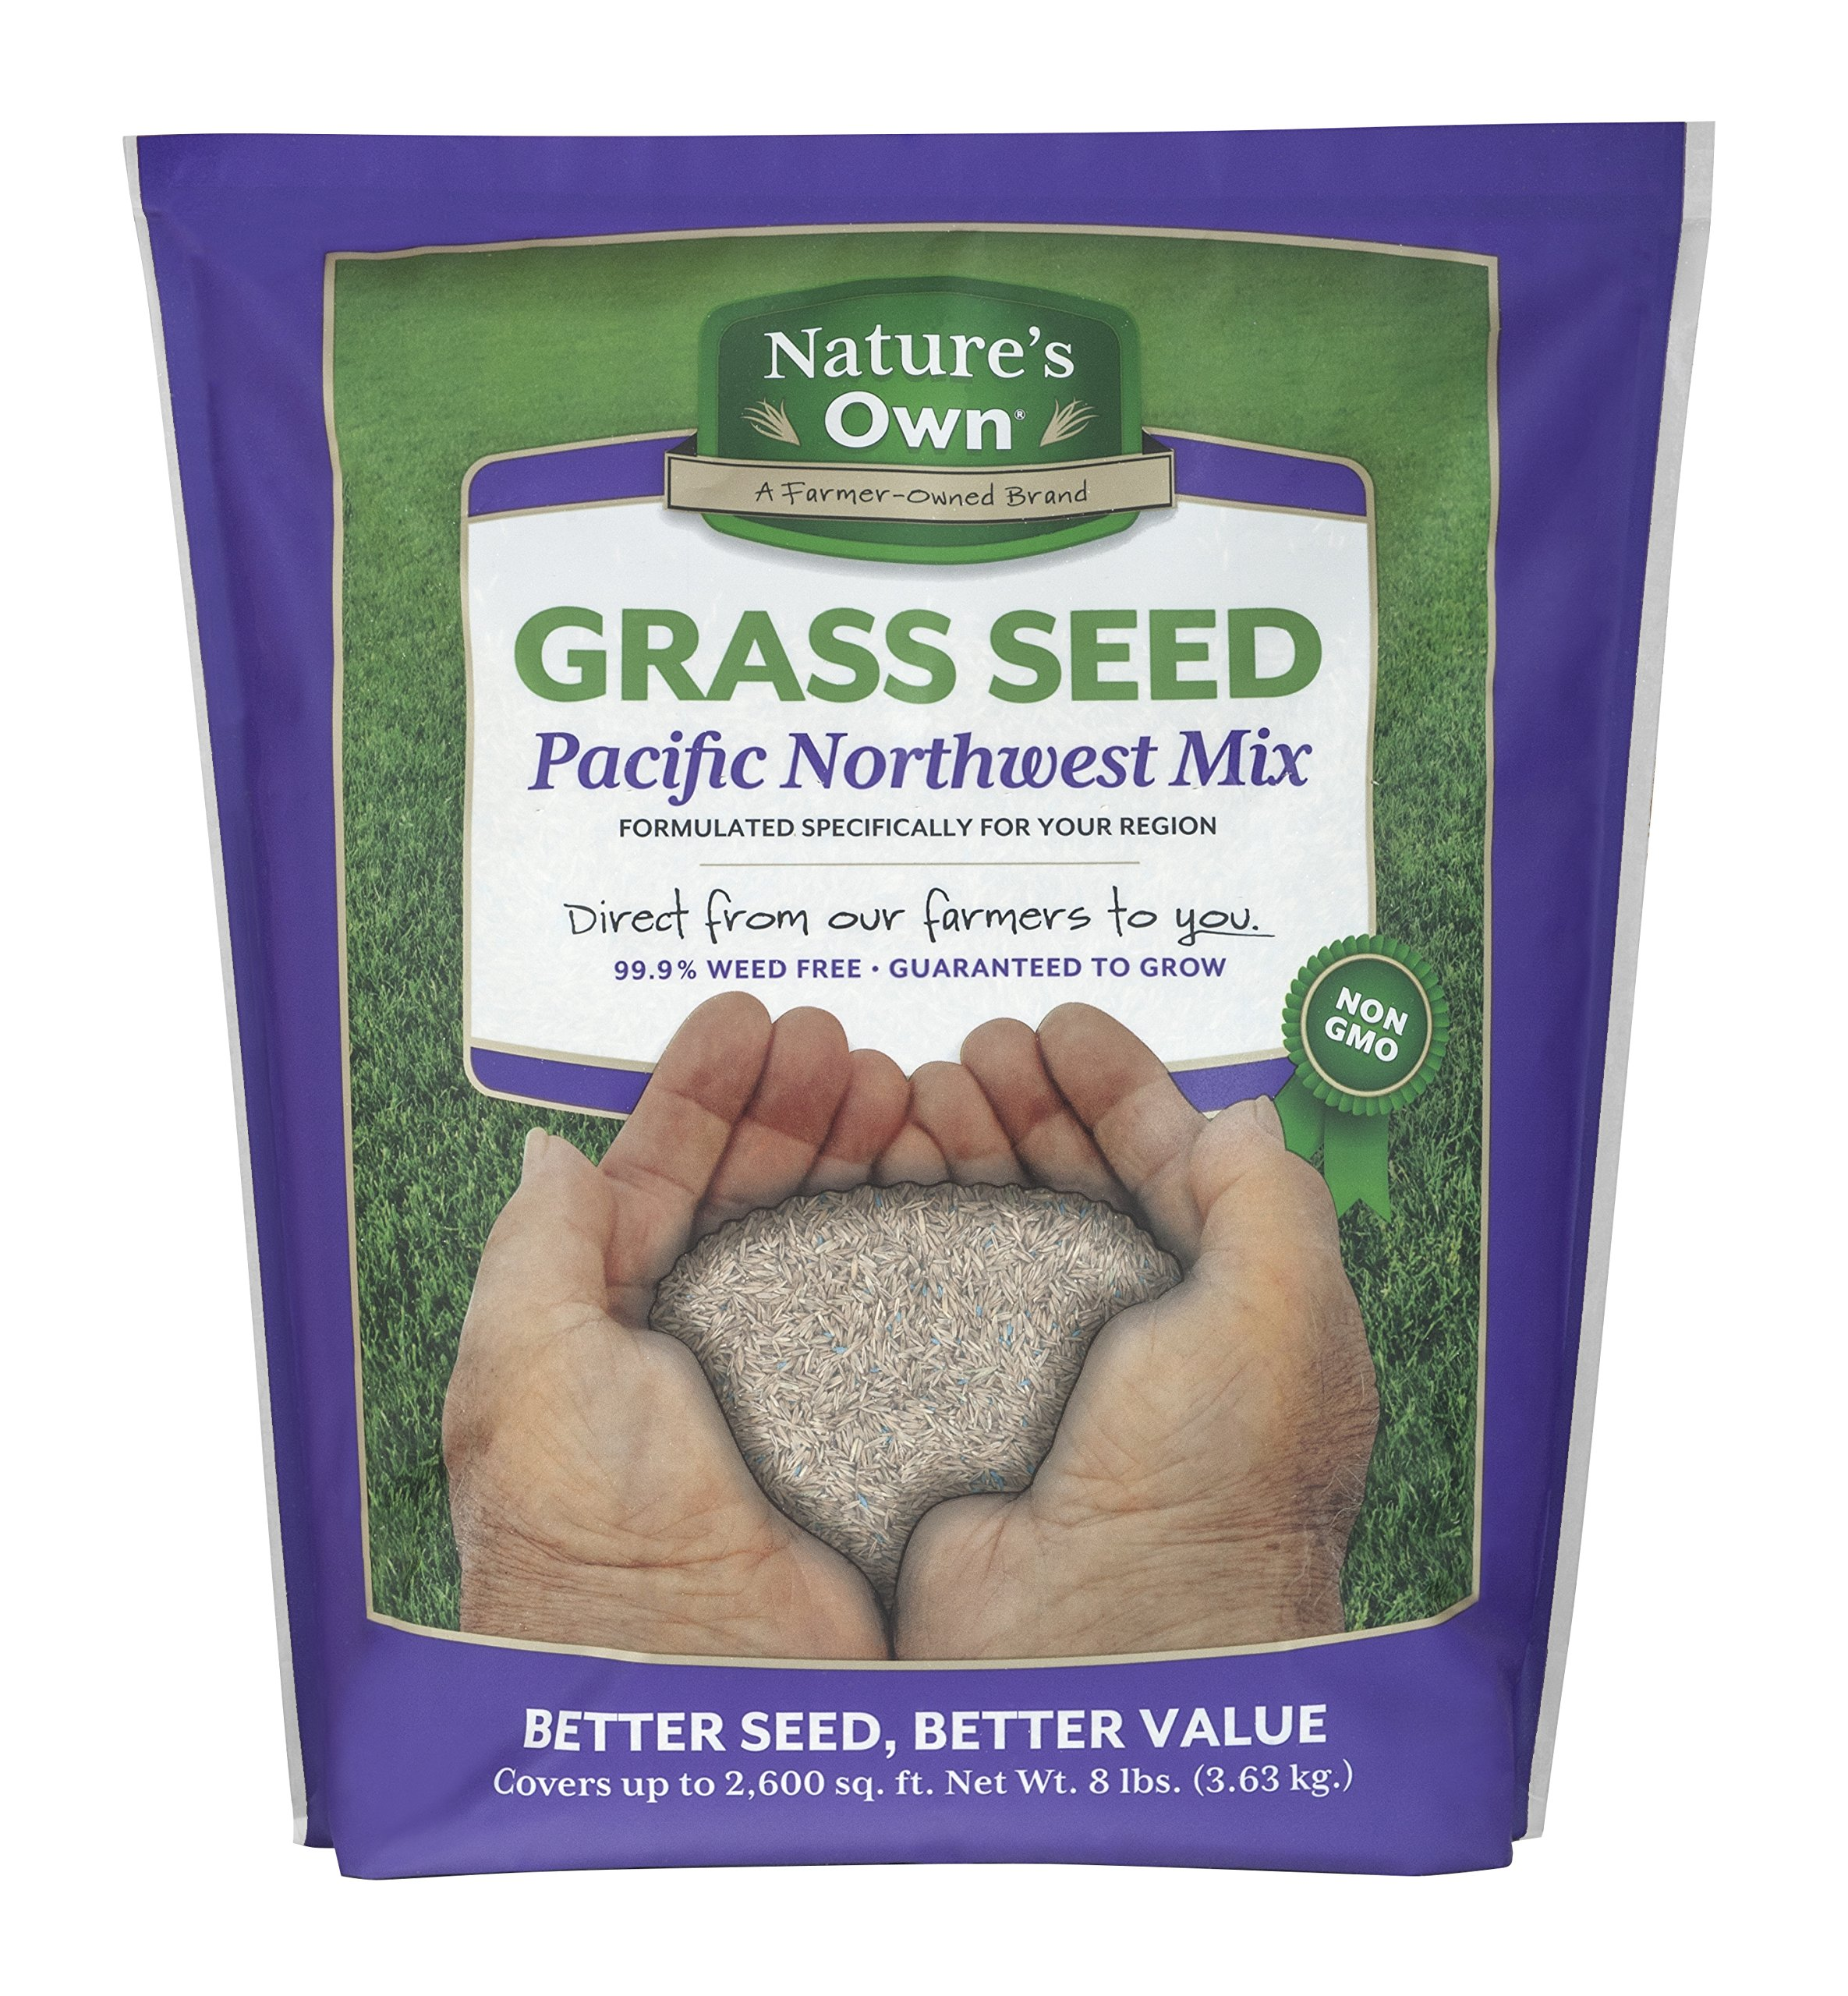 Mountain View Seeds Natures Own Pacific Northwest Mix Grass Seed, 8-pounds by Mountain View Seed (Image #1)